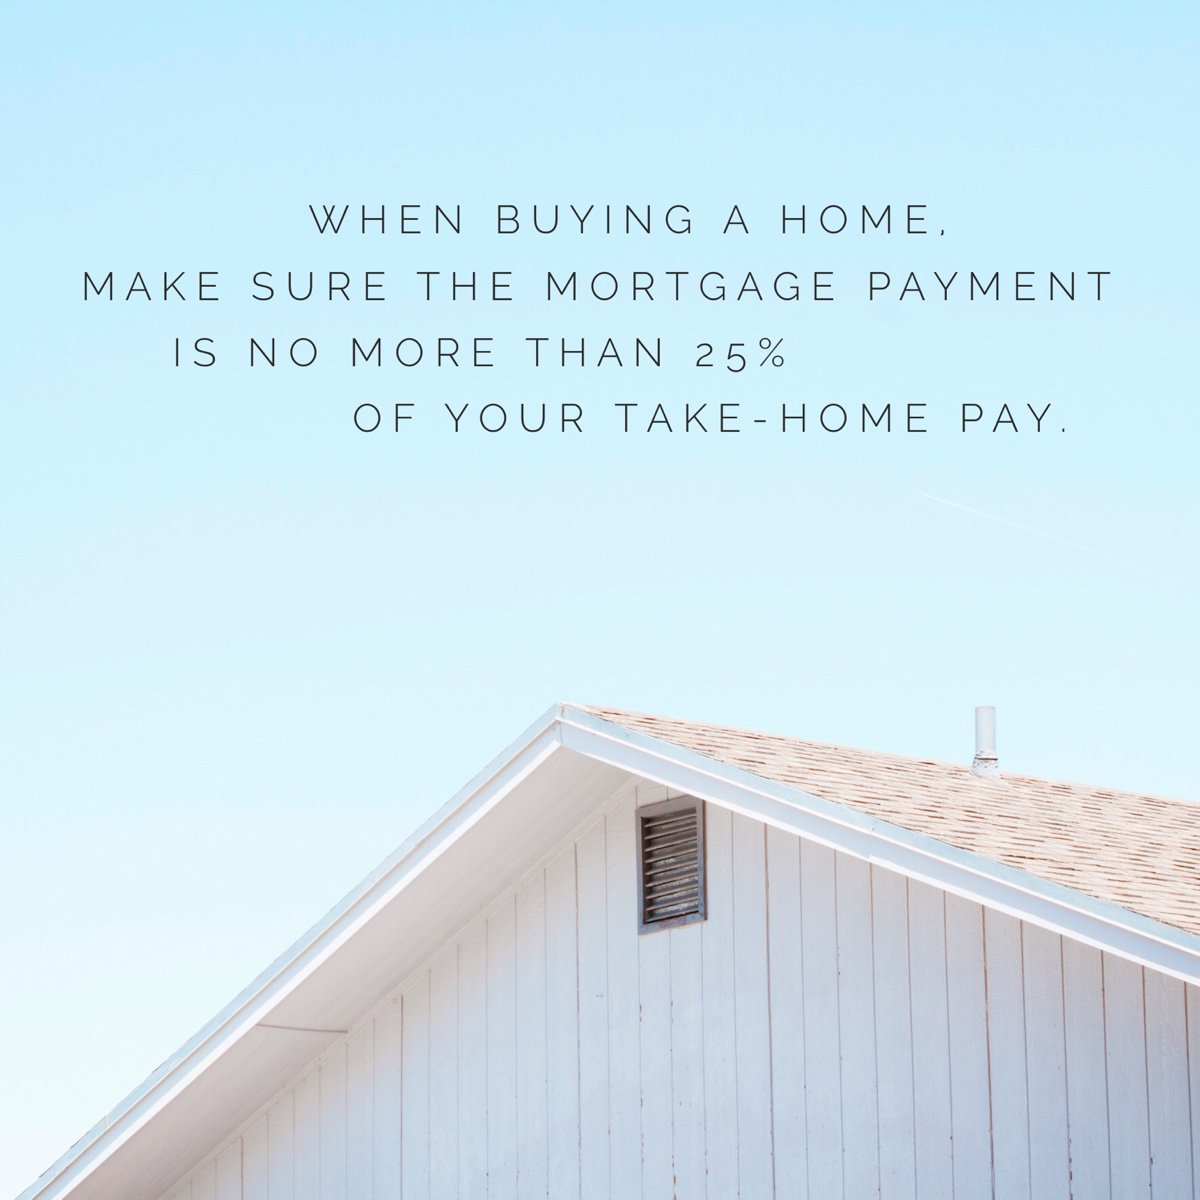 Rachel Cruze On Twitter Ing And Moving Into A Home Can Be Such An Exciting Time In Life But Make Sure You Re Financially Ready